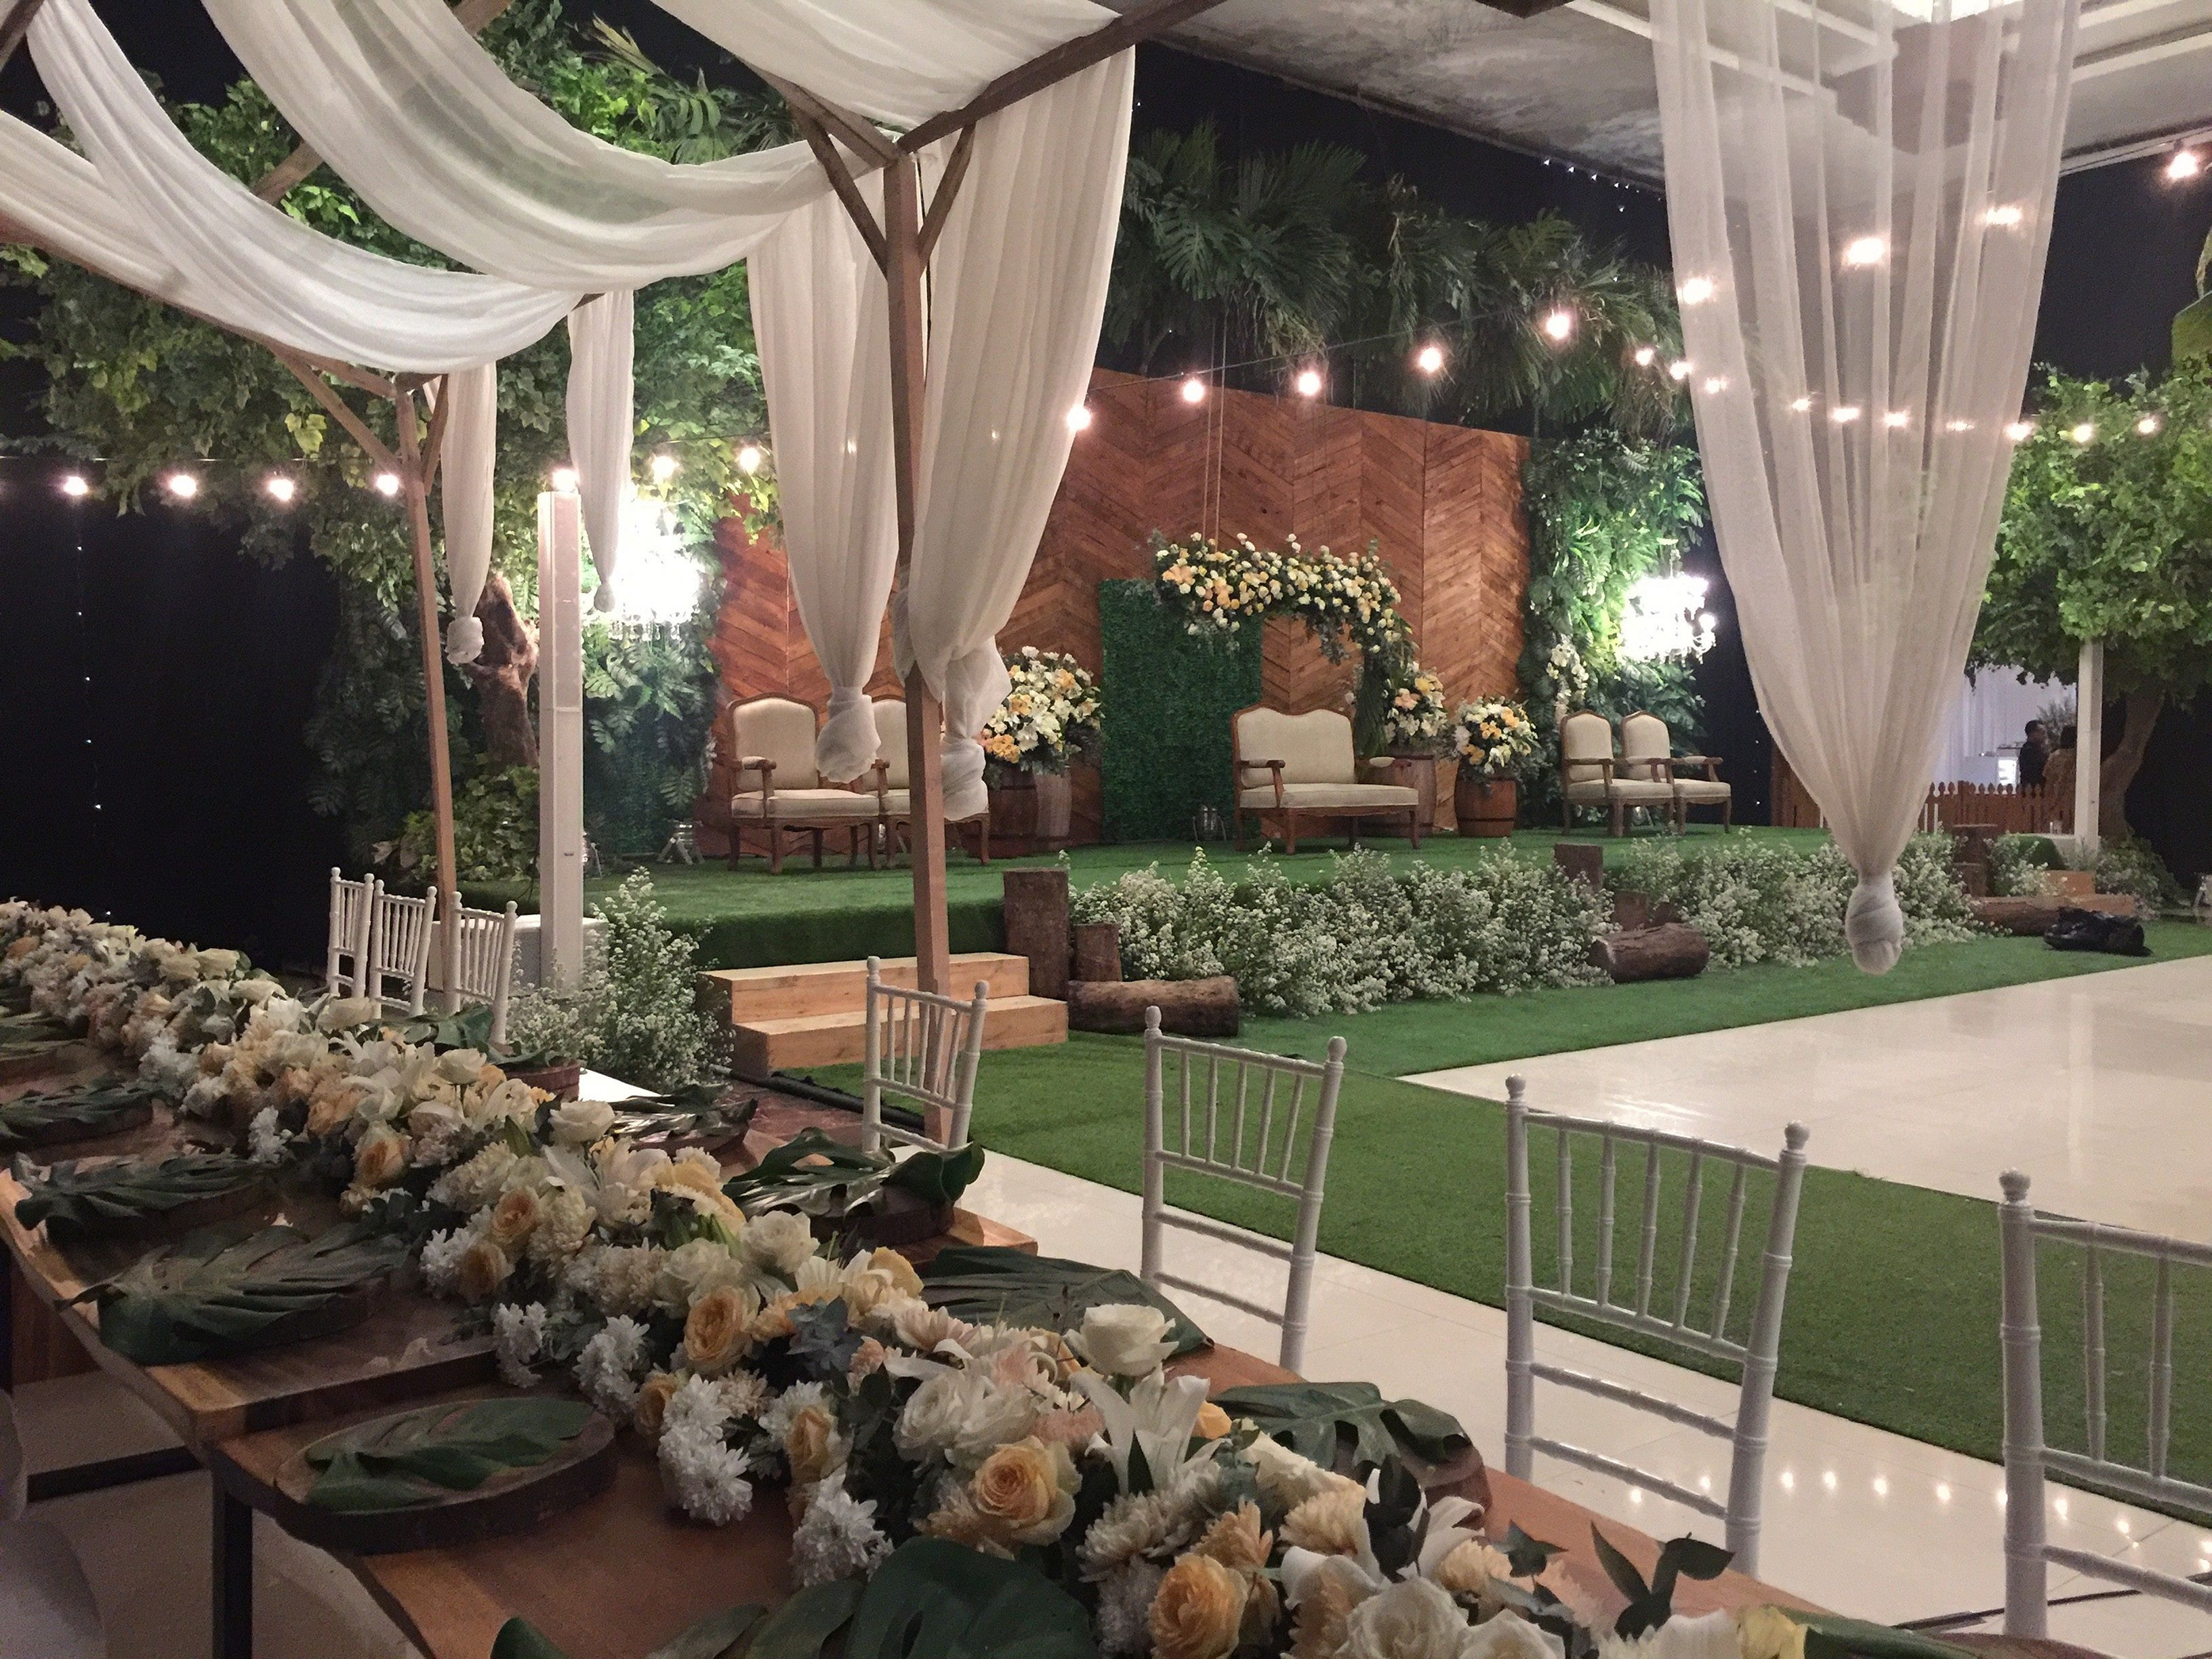 Great 20 Incredible Rustic Outdoor Wedding Reception Decoration Ideas Https Oosile Com 20 Incredible Dekorasi Perkawinan Dekorasi Pernikahan Ide Perkawinan